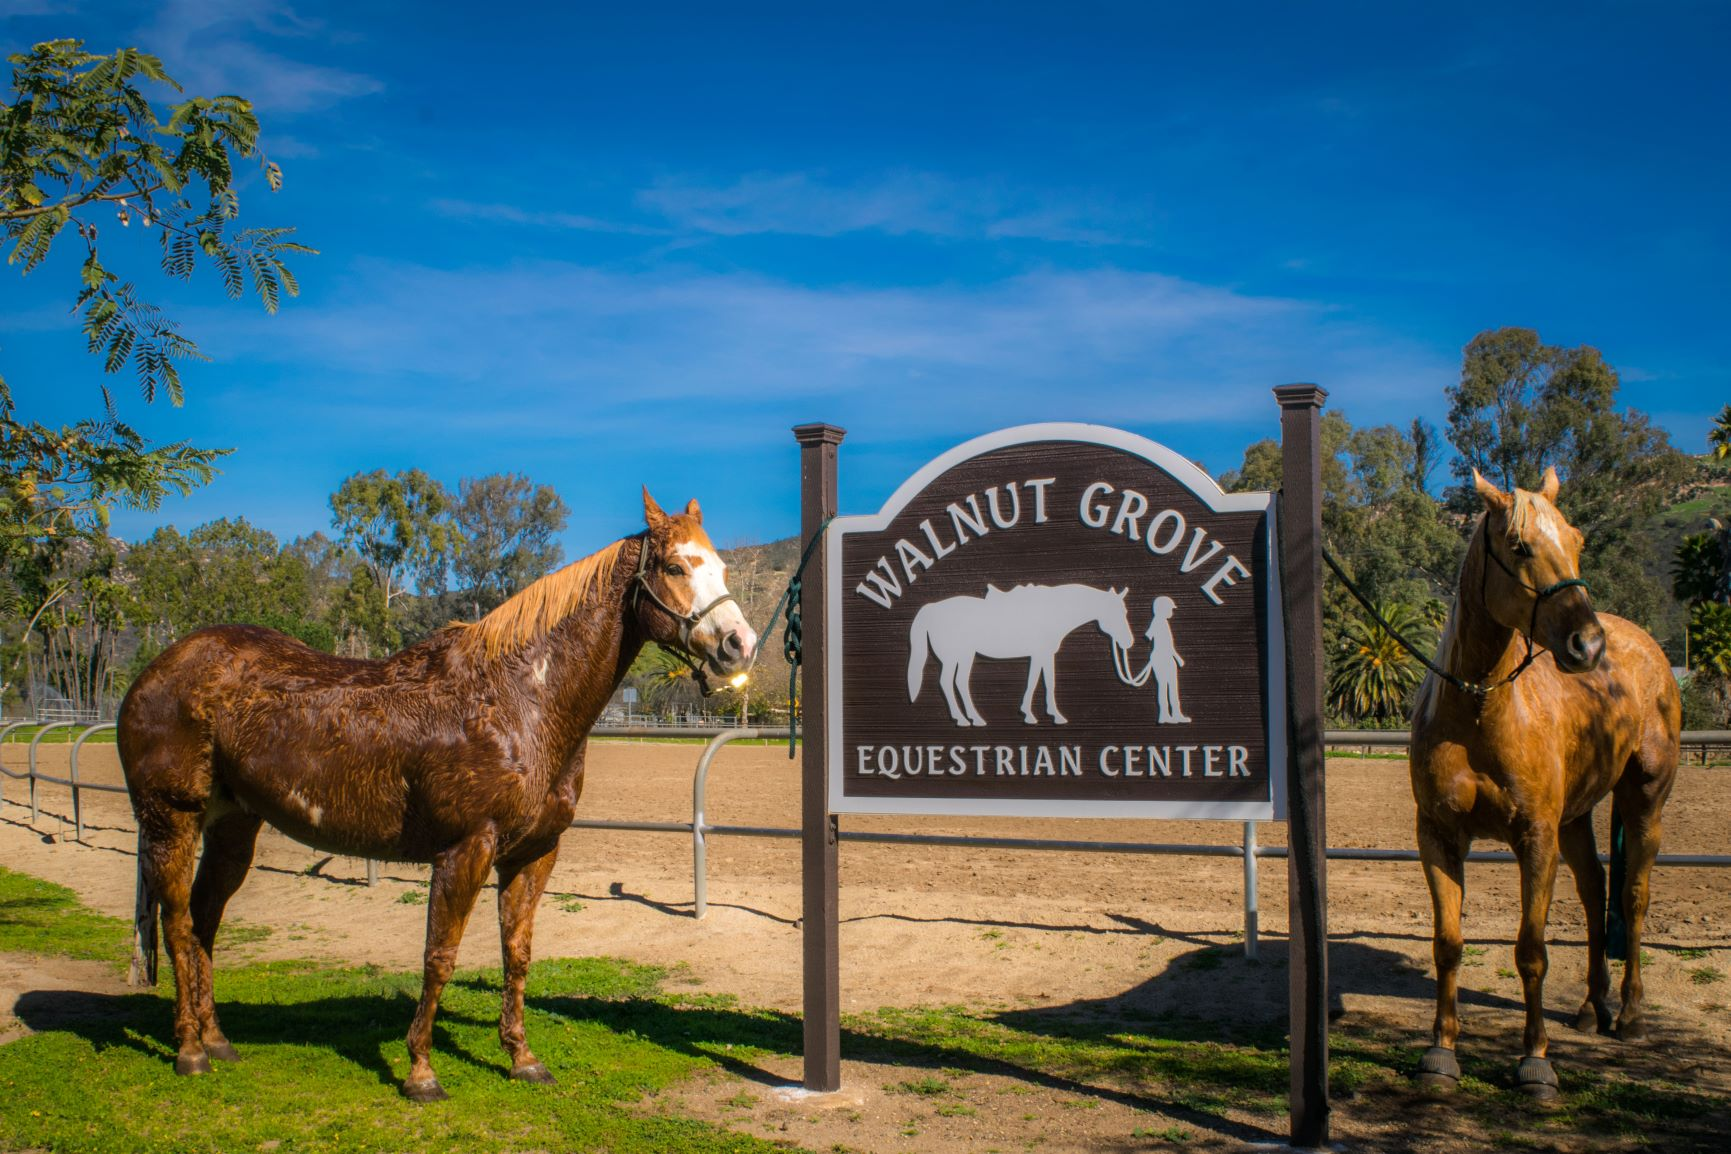 Walnut Grove Equestrian Center by Nicki James